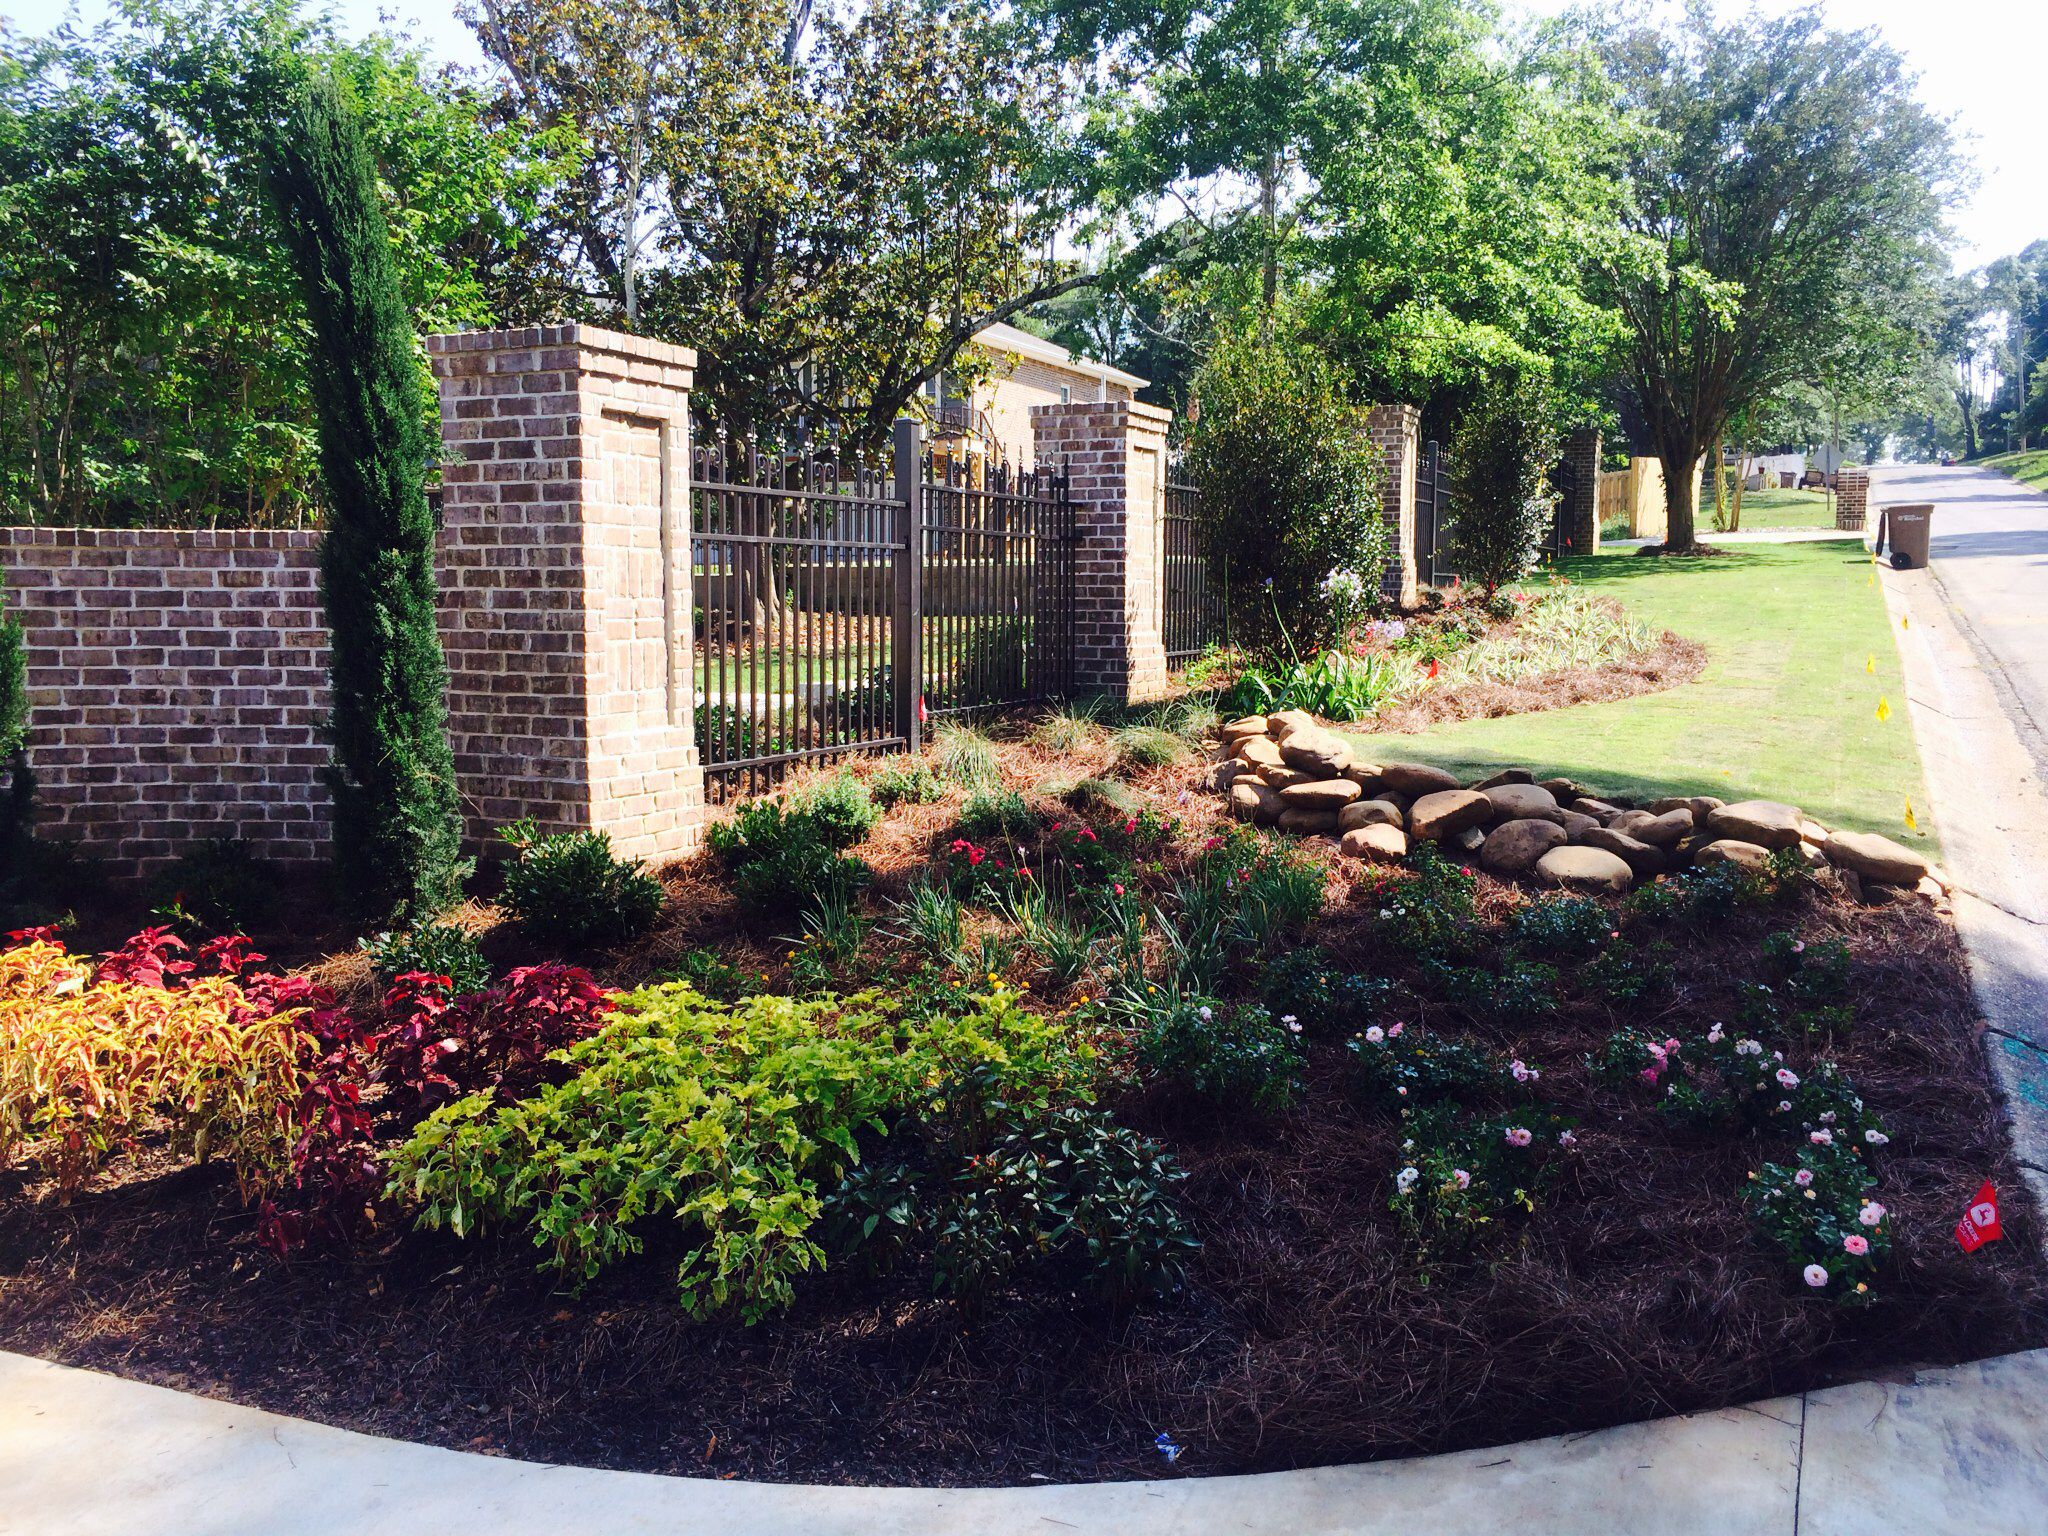 A Colorful And Elegant Landscape Design By James Martin And Installed By Gulfside Landscaping Pensacola Florida Landscape Design Elegant Landscape Landscape